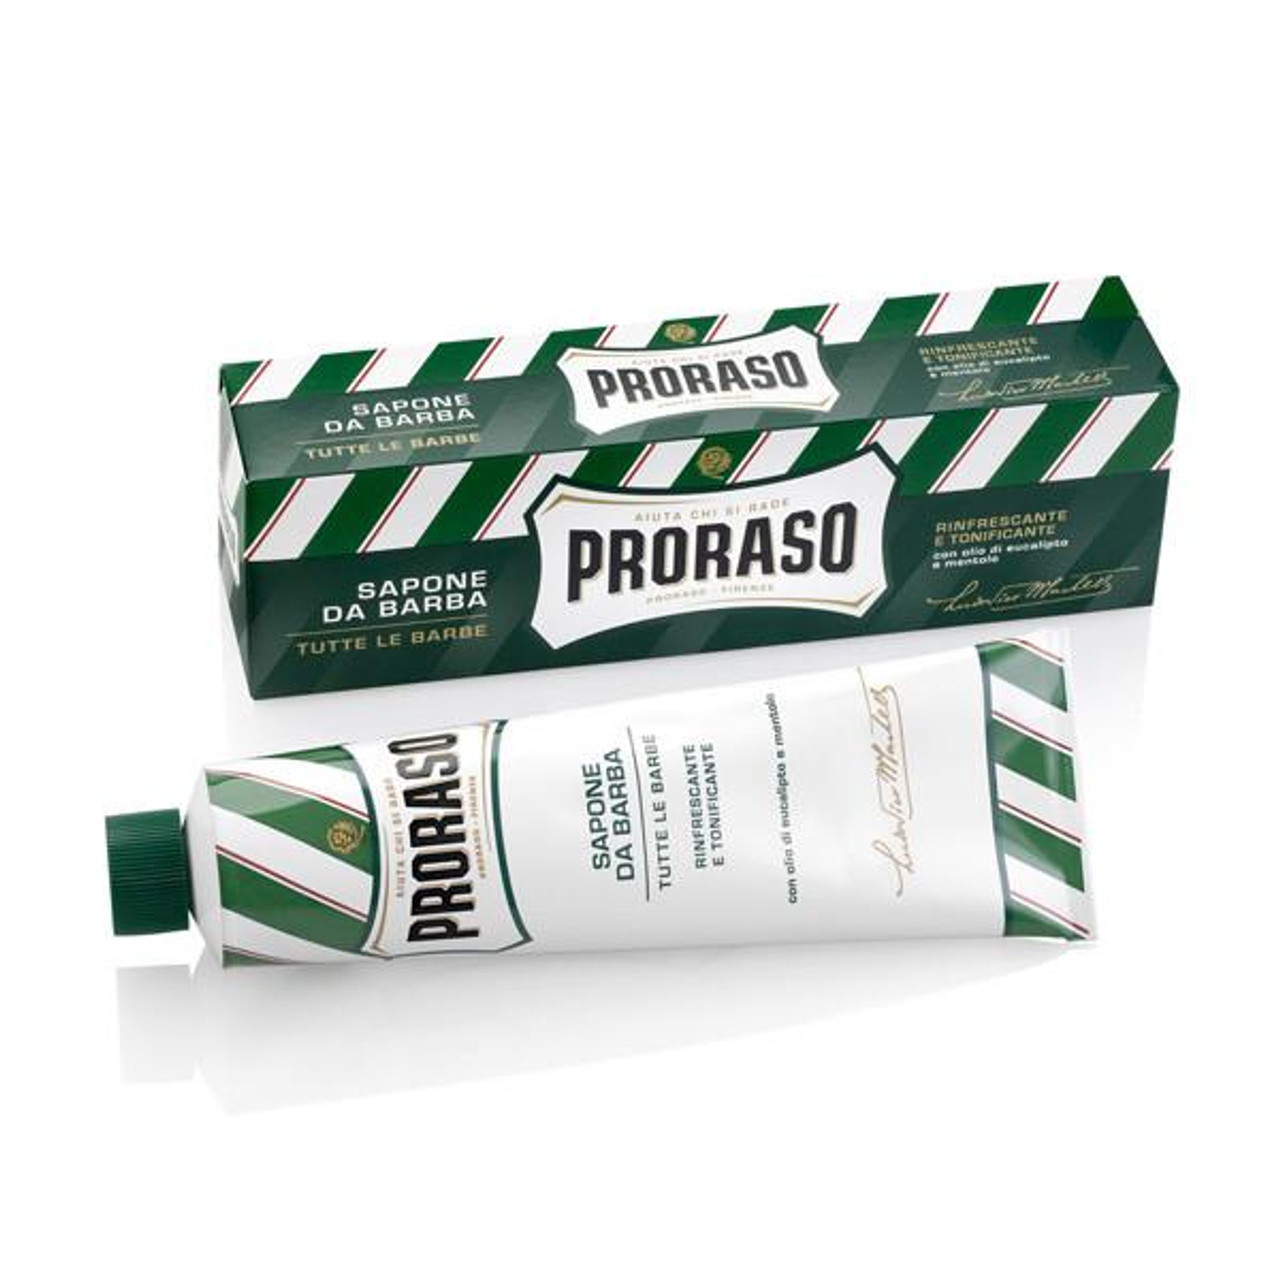 Proraso Green Tube Shave Cream